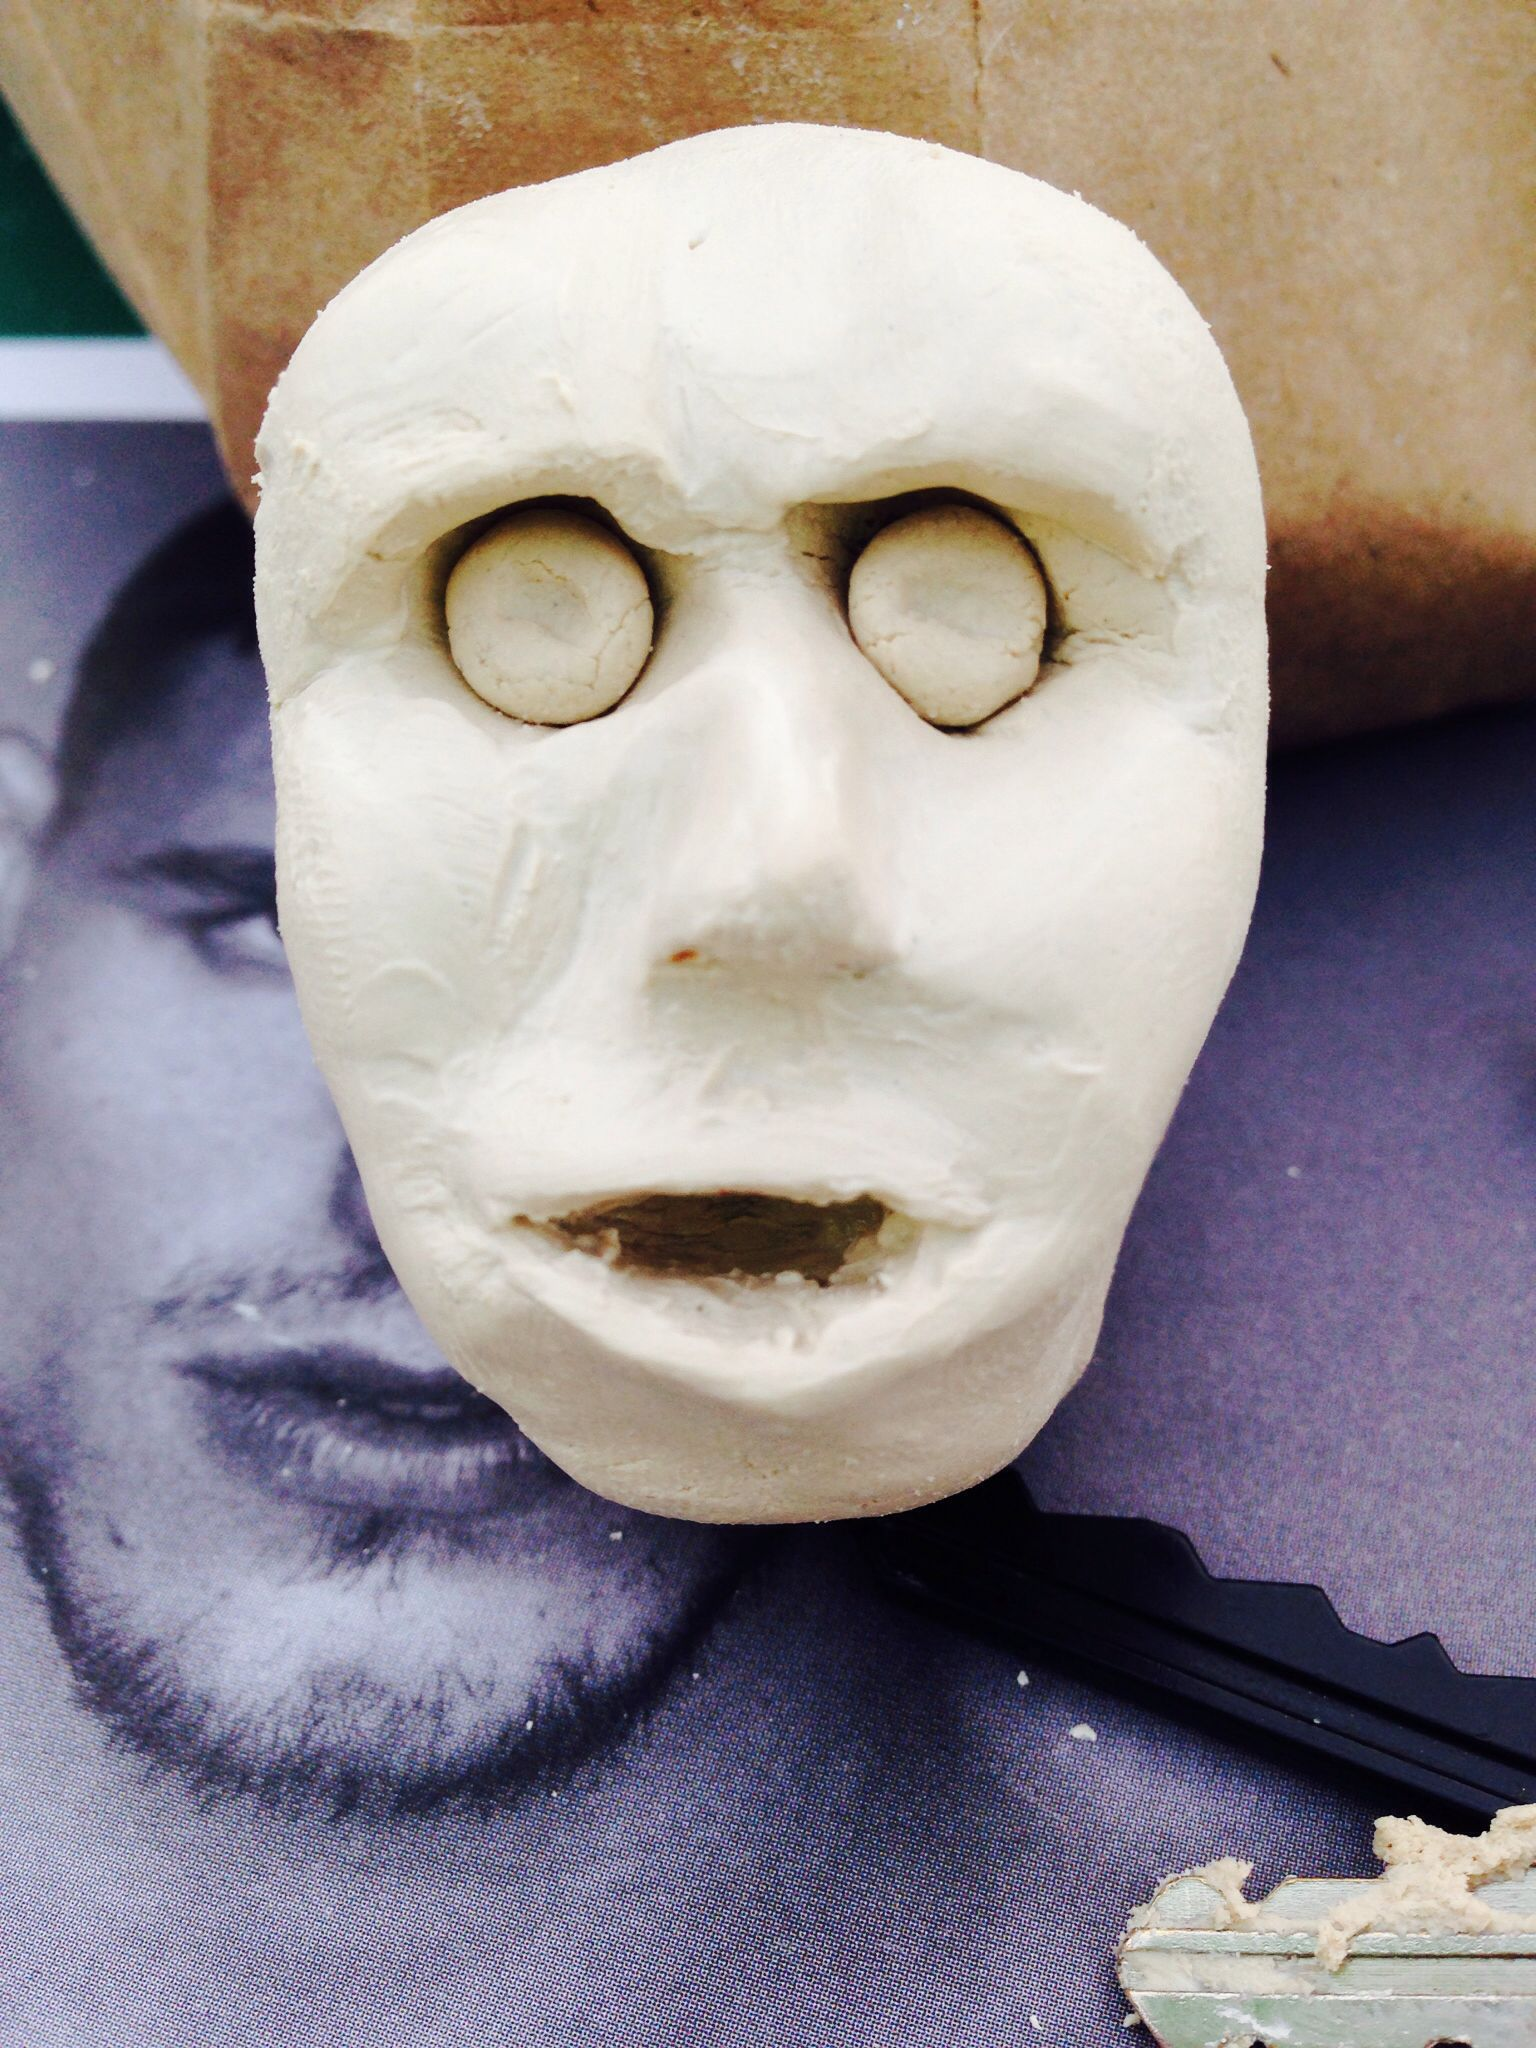 My attempt at a ceramic face, maybe next time.